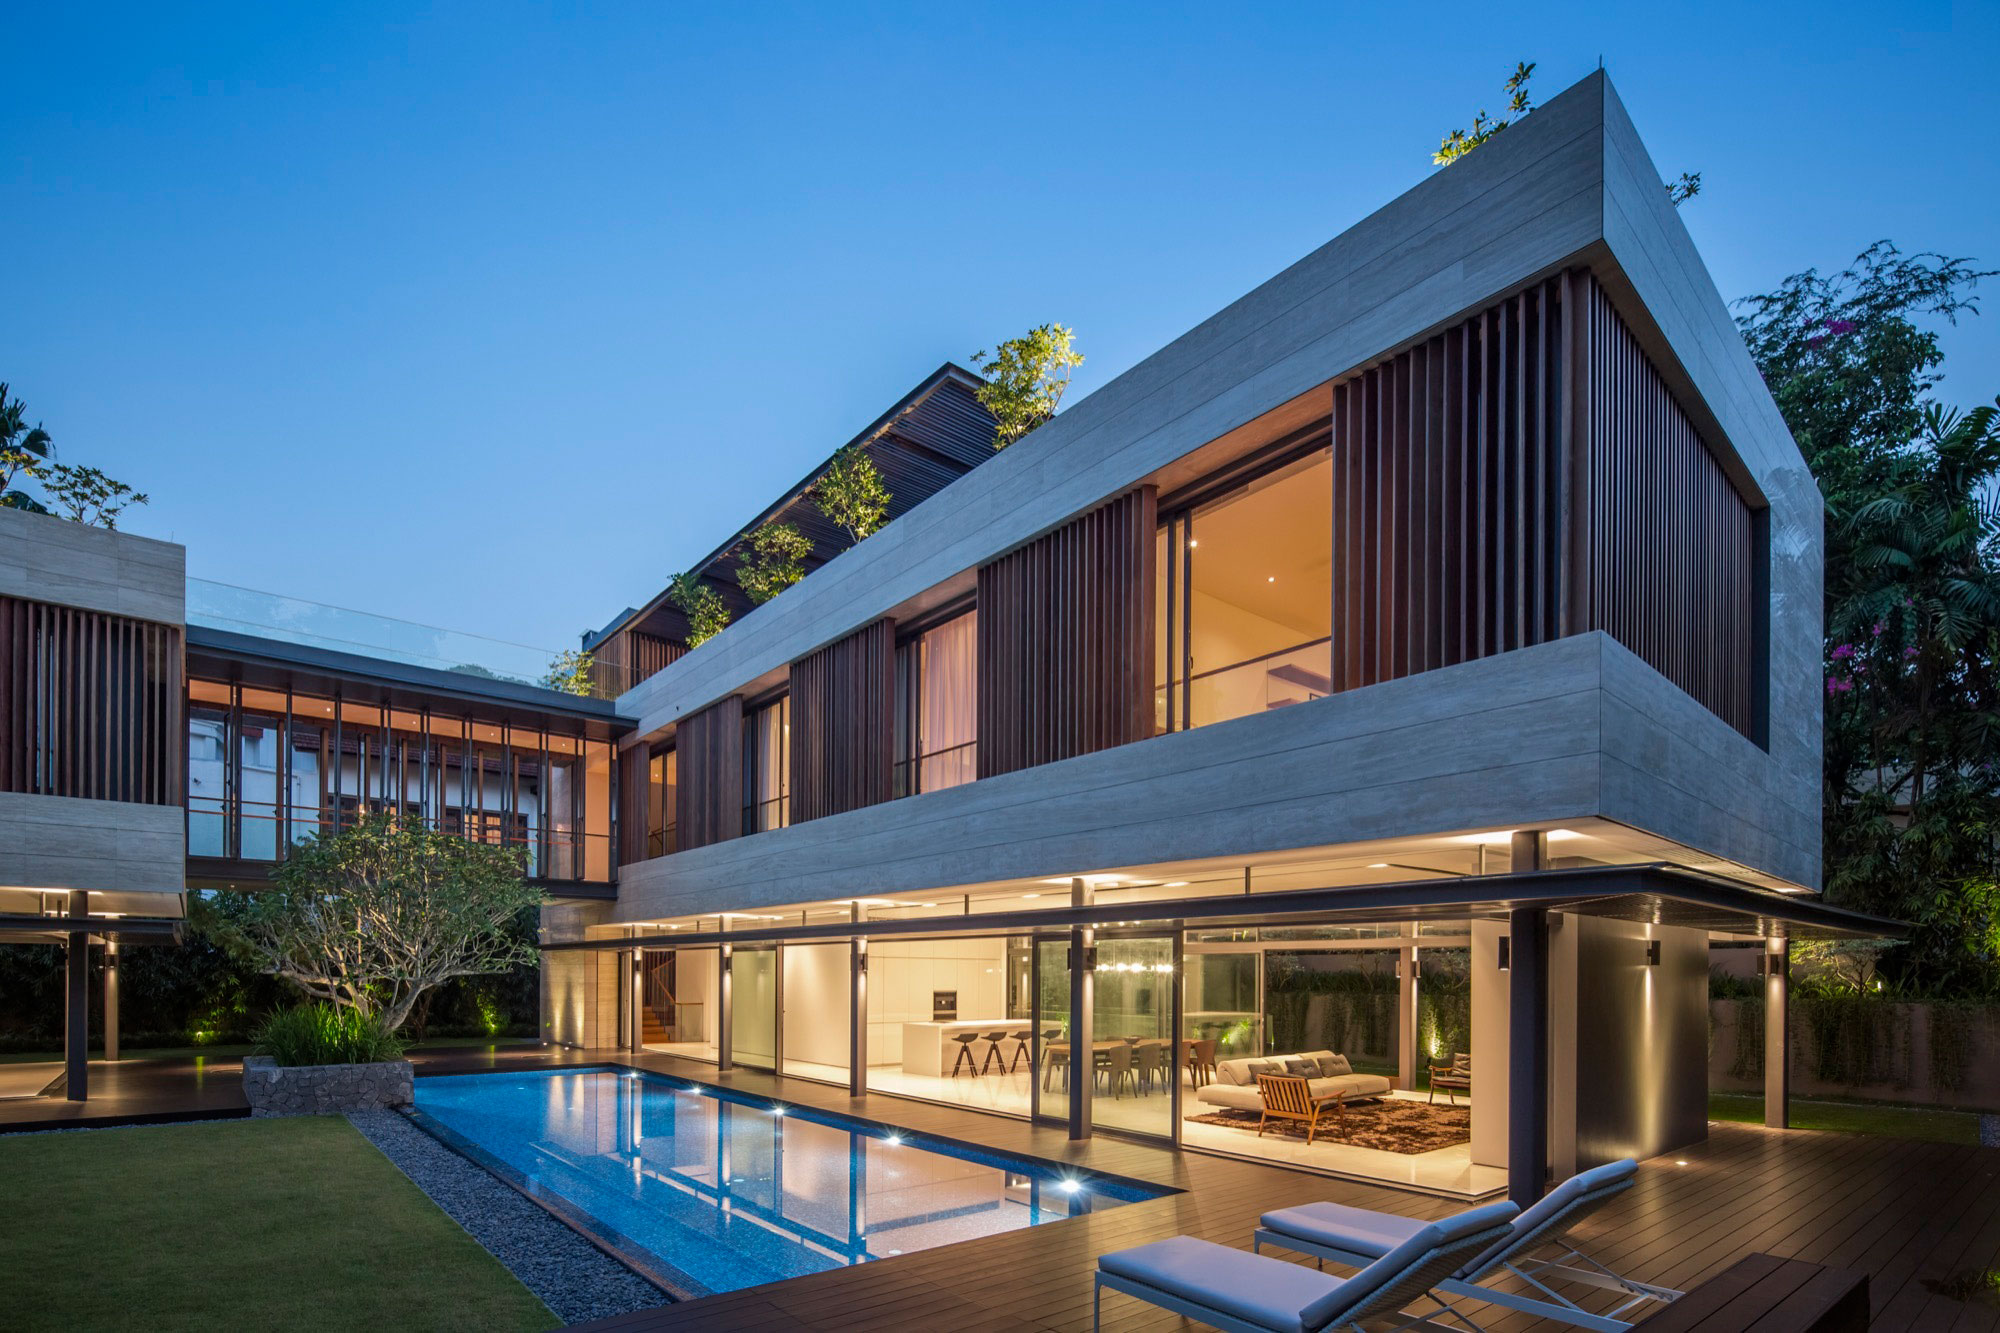 Wallflower Architecture + Design Creates a Vast Contemporary Home in Bukit Timah, Singapore